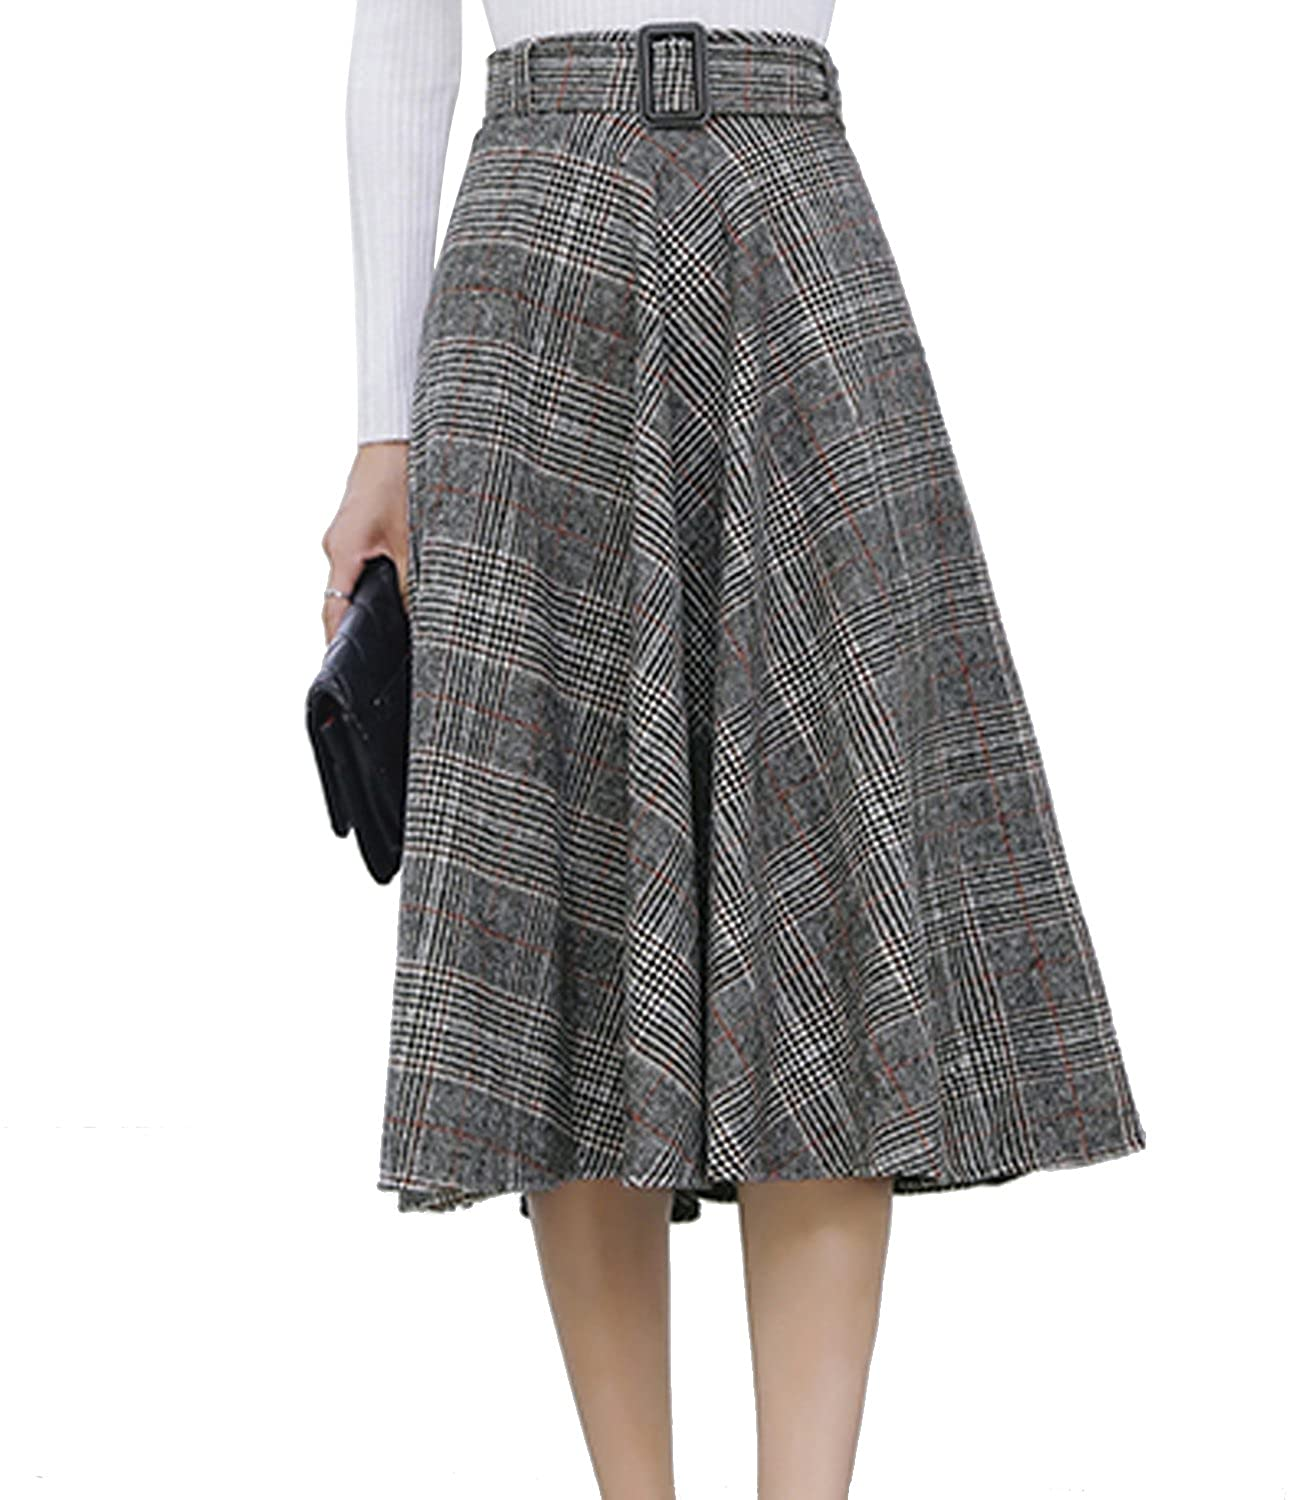 Agent Peggy Carter Costume, Dress, Hats Sanifer Womens Warm Woolen Plaid Gray Pleated A Line Skirt with Belt $27.99 AT vintagedancer.com